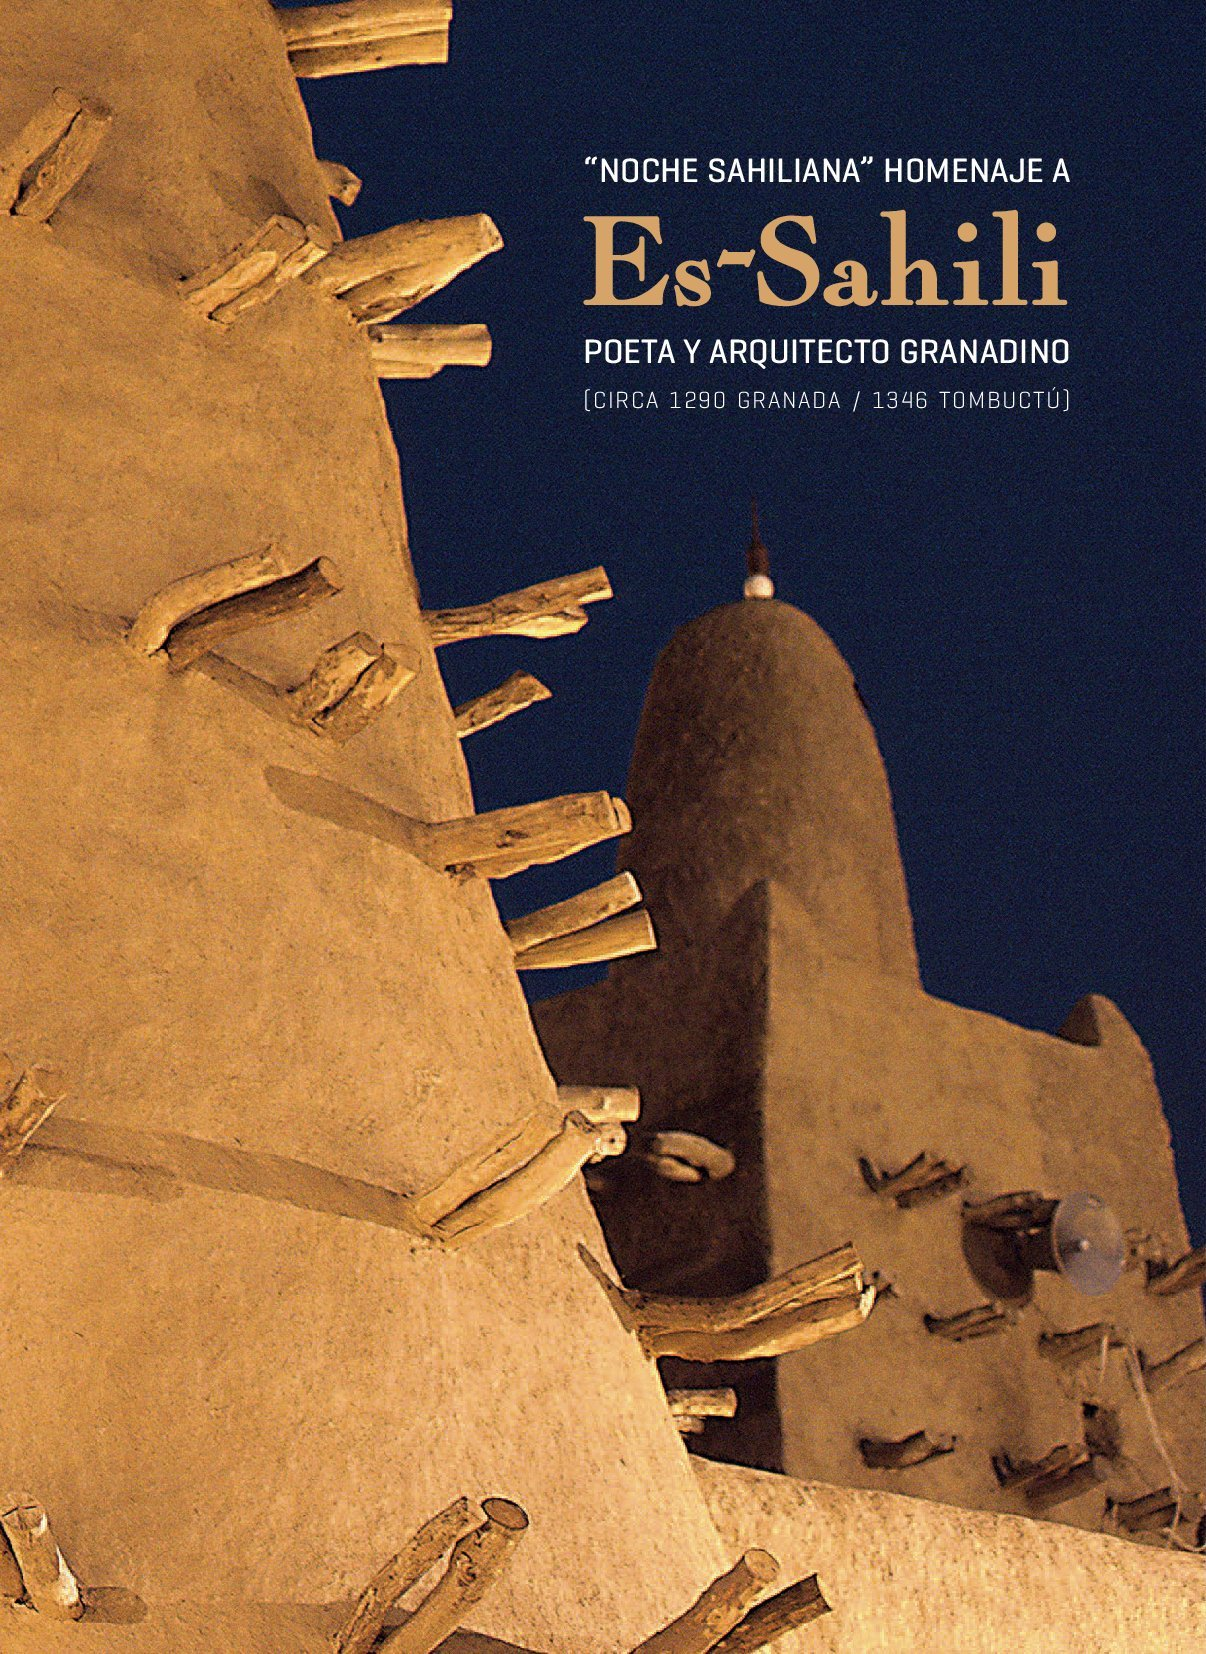 A night of Andalusian poetry and music to pay tribute to Es-Sahili in the Alhambra